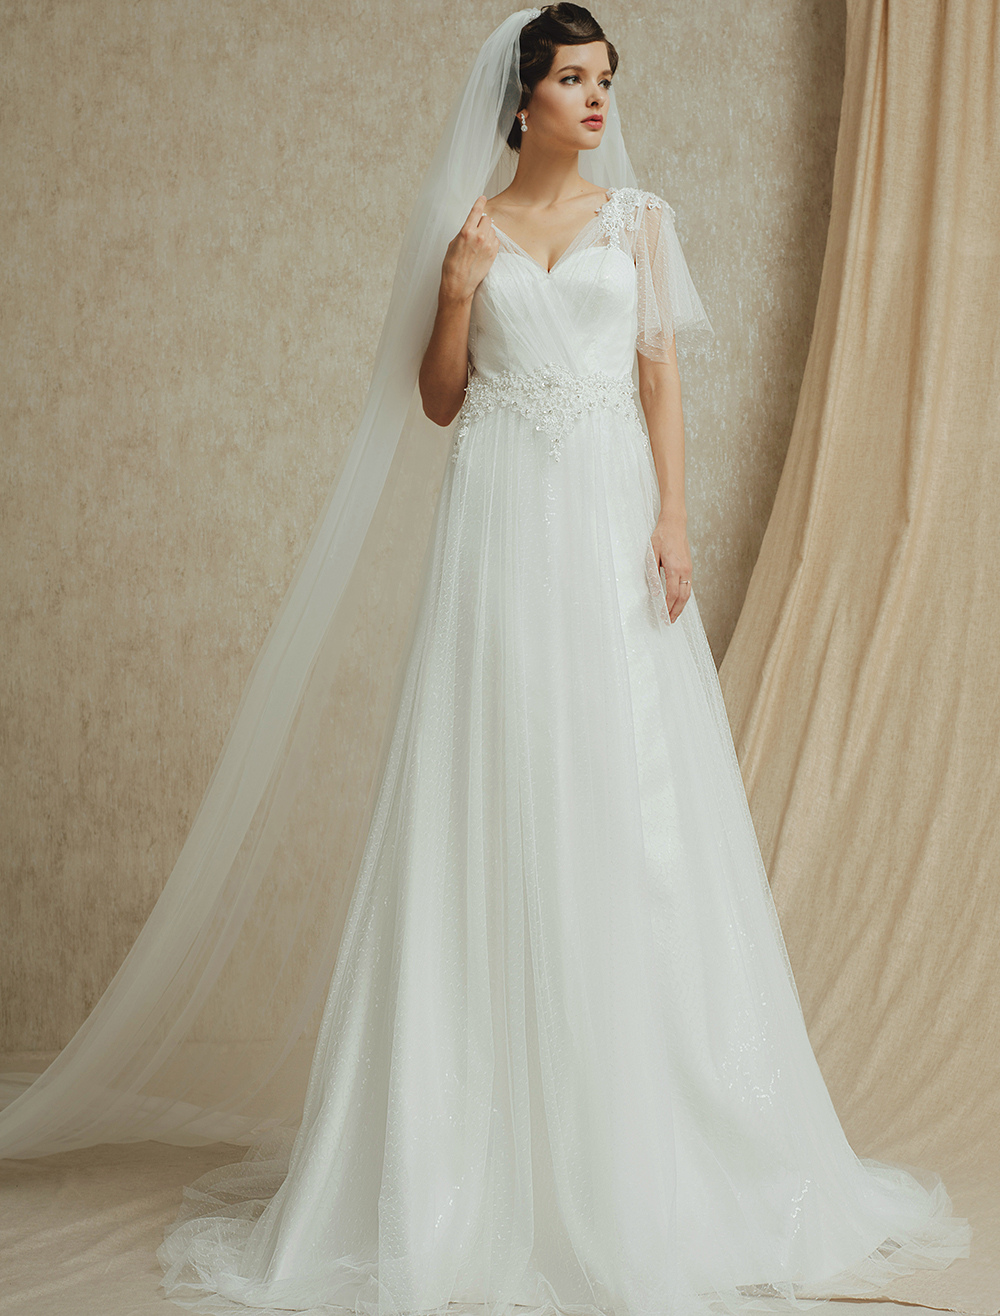 Ivory Wedding Dress with V-Neck Sequined Lace ( Veil & Accessories are Excluded )